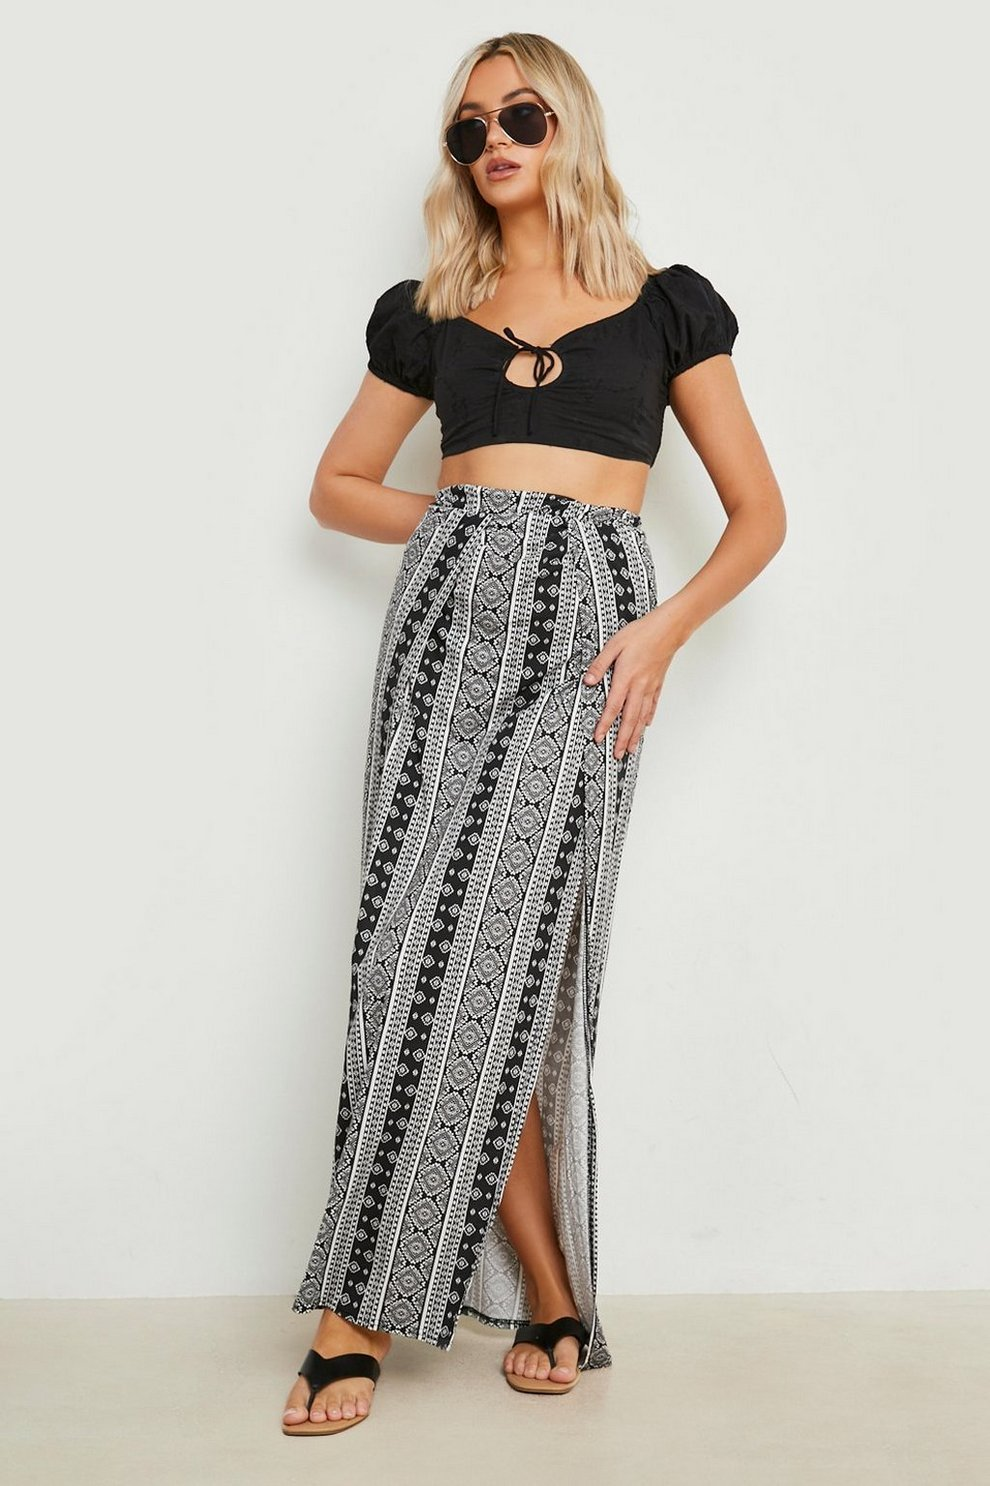 Fashion week Waisted High maxi skirt with split pictures for girls